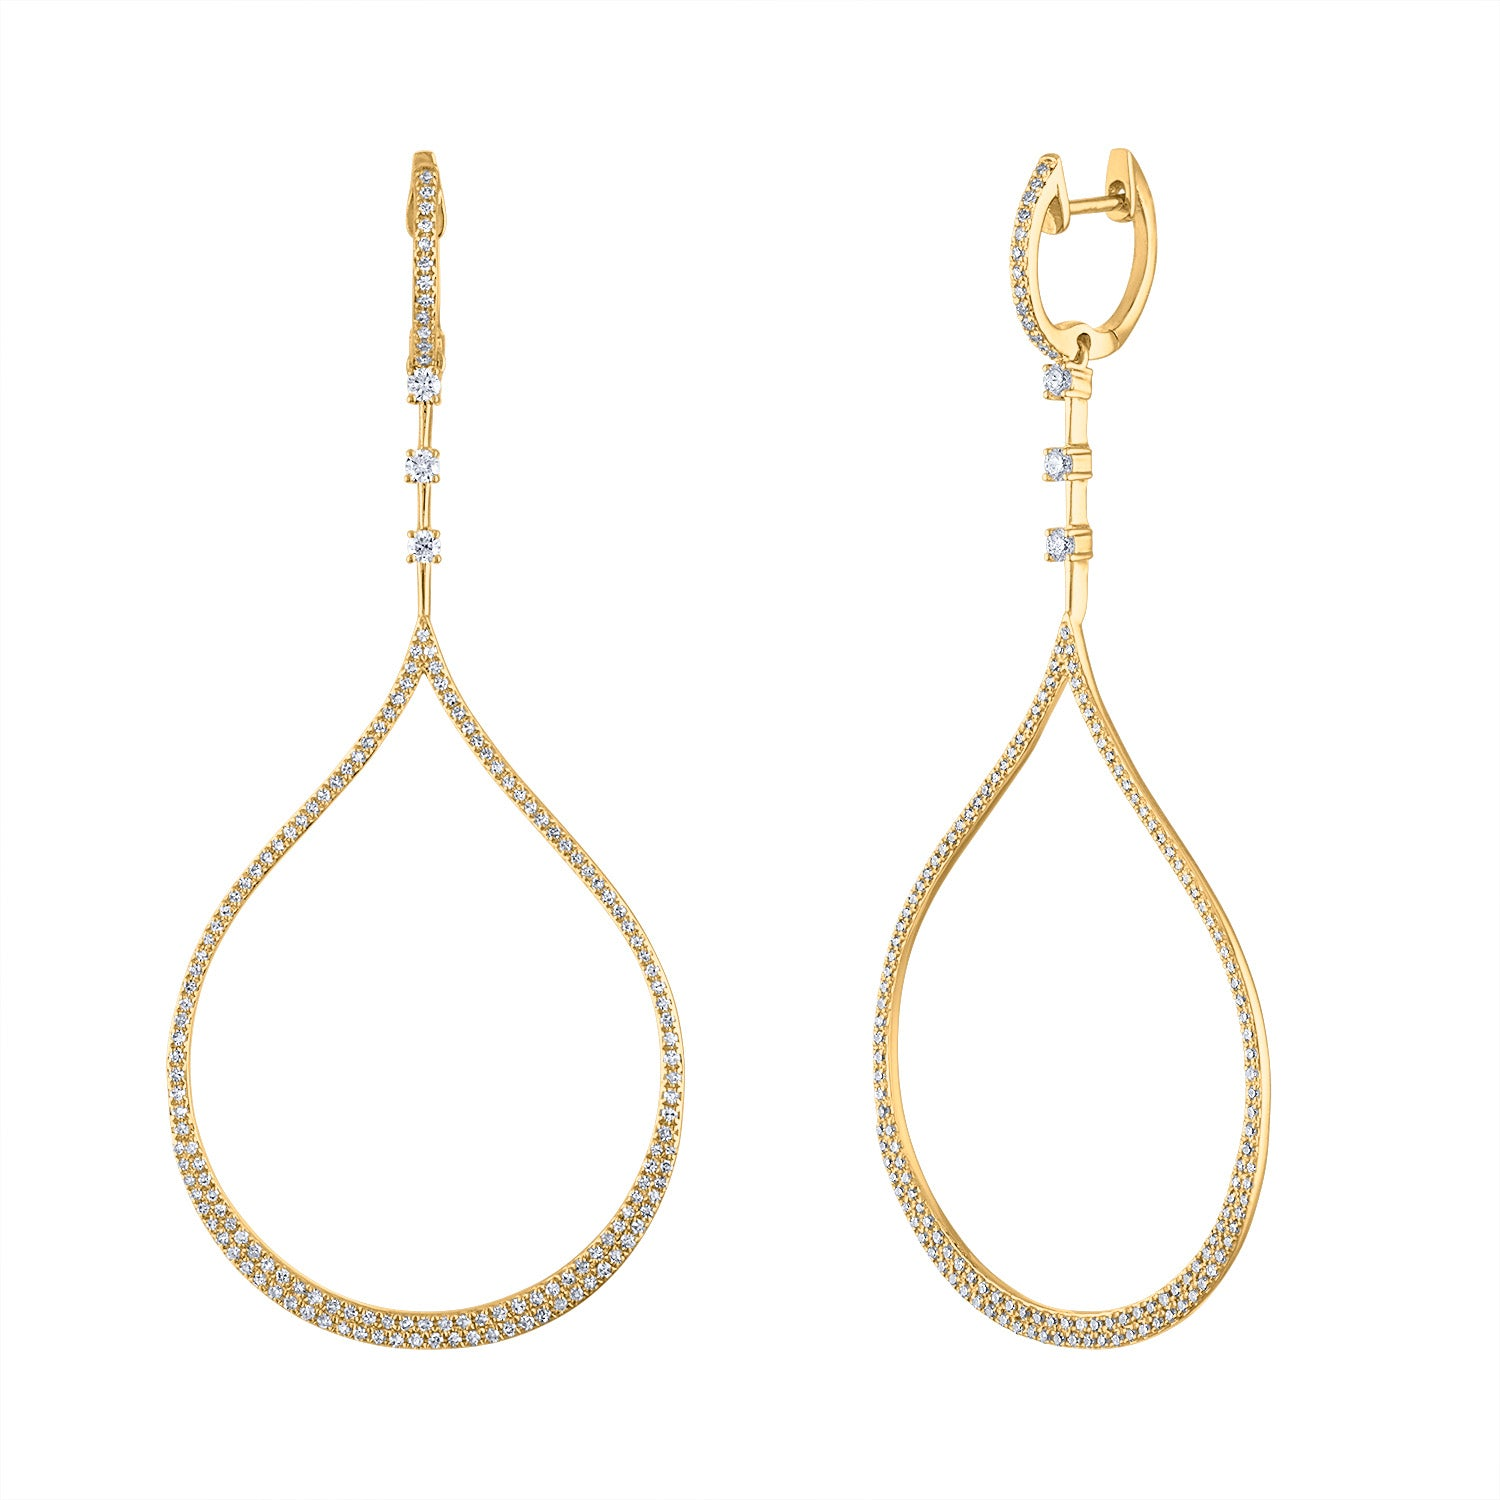 14KT GOLD DIAMOND WIDE OPEN TEARDROP HUGGIE EARRING